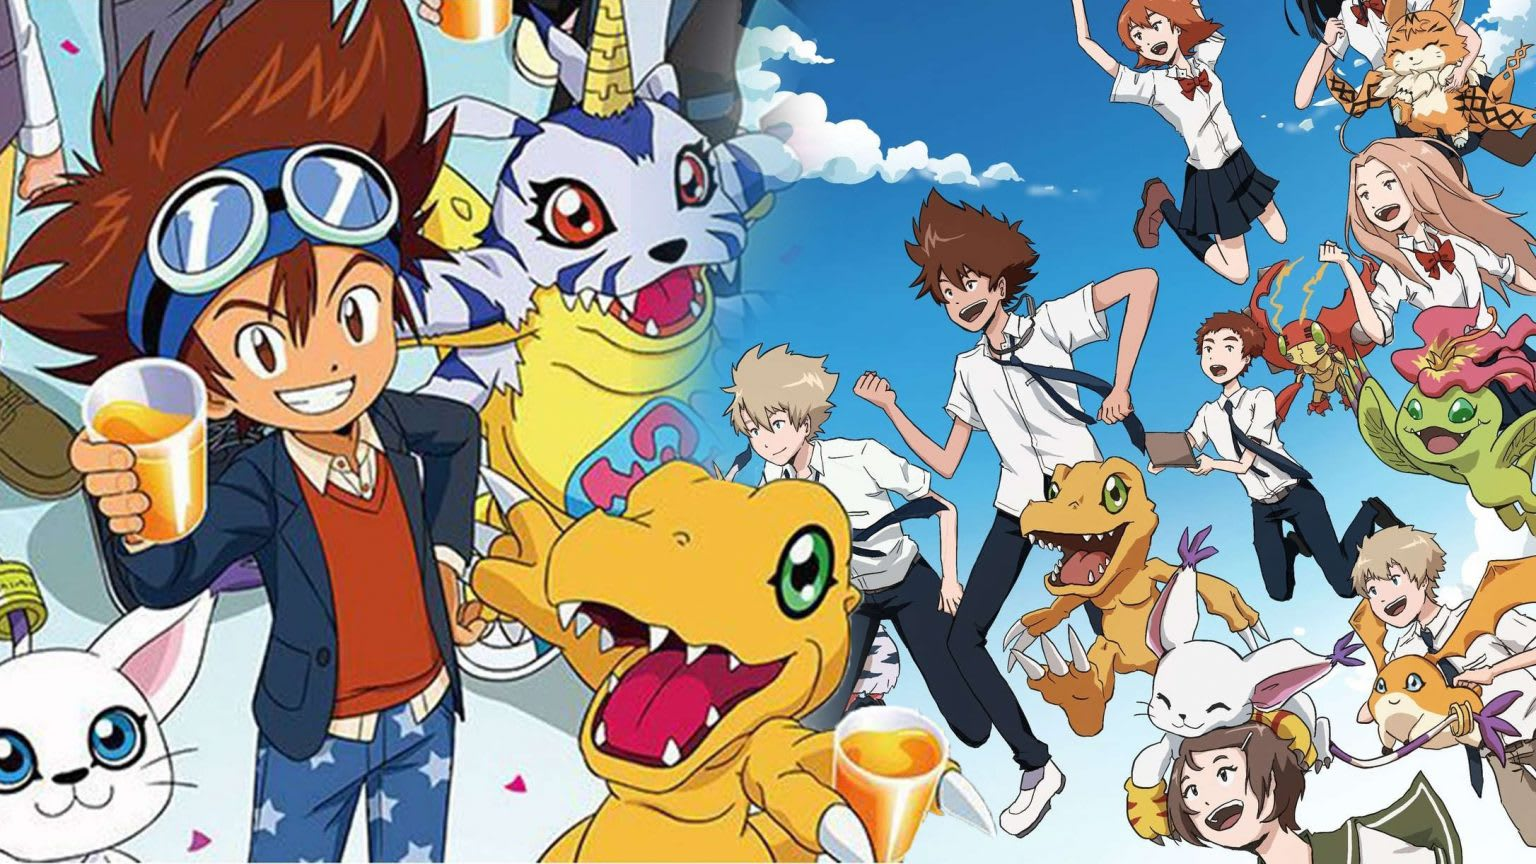 Digimon Adventure Episode 18: Release Date, Preview, Spoilers, And What To Expect m